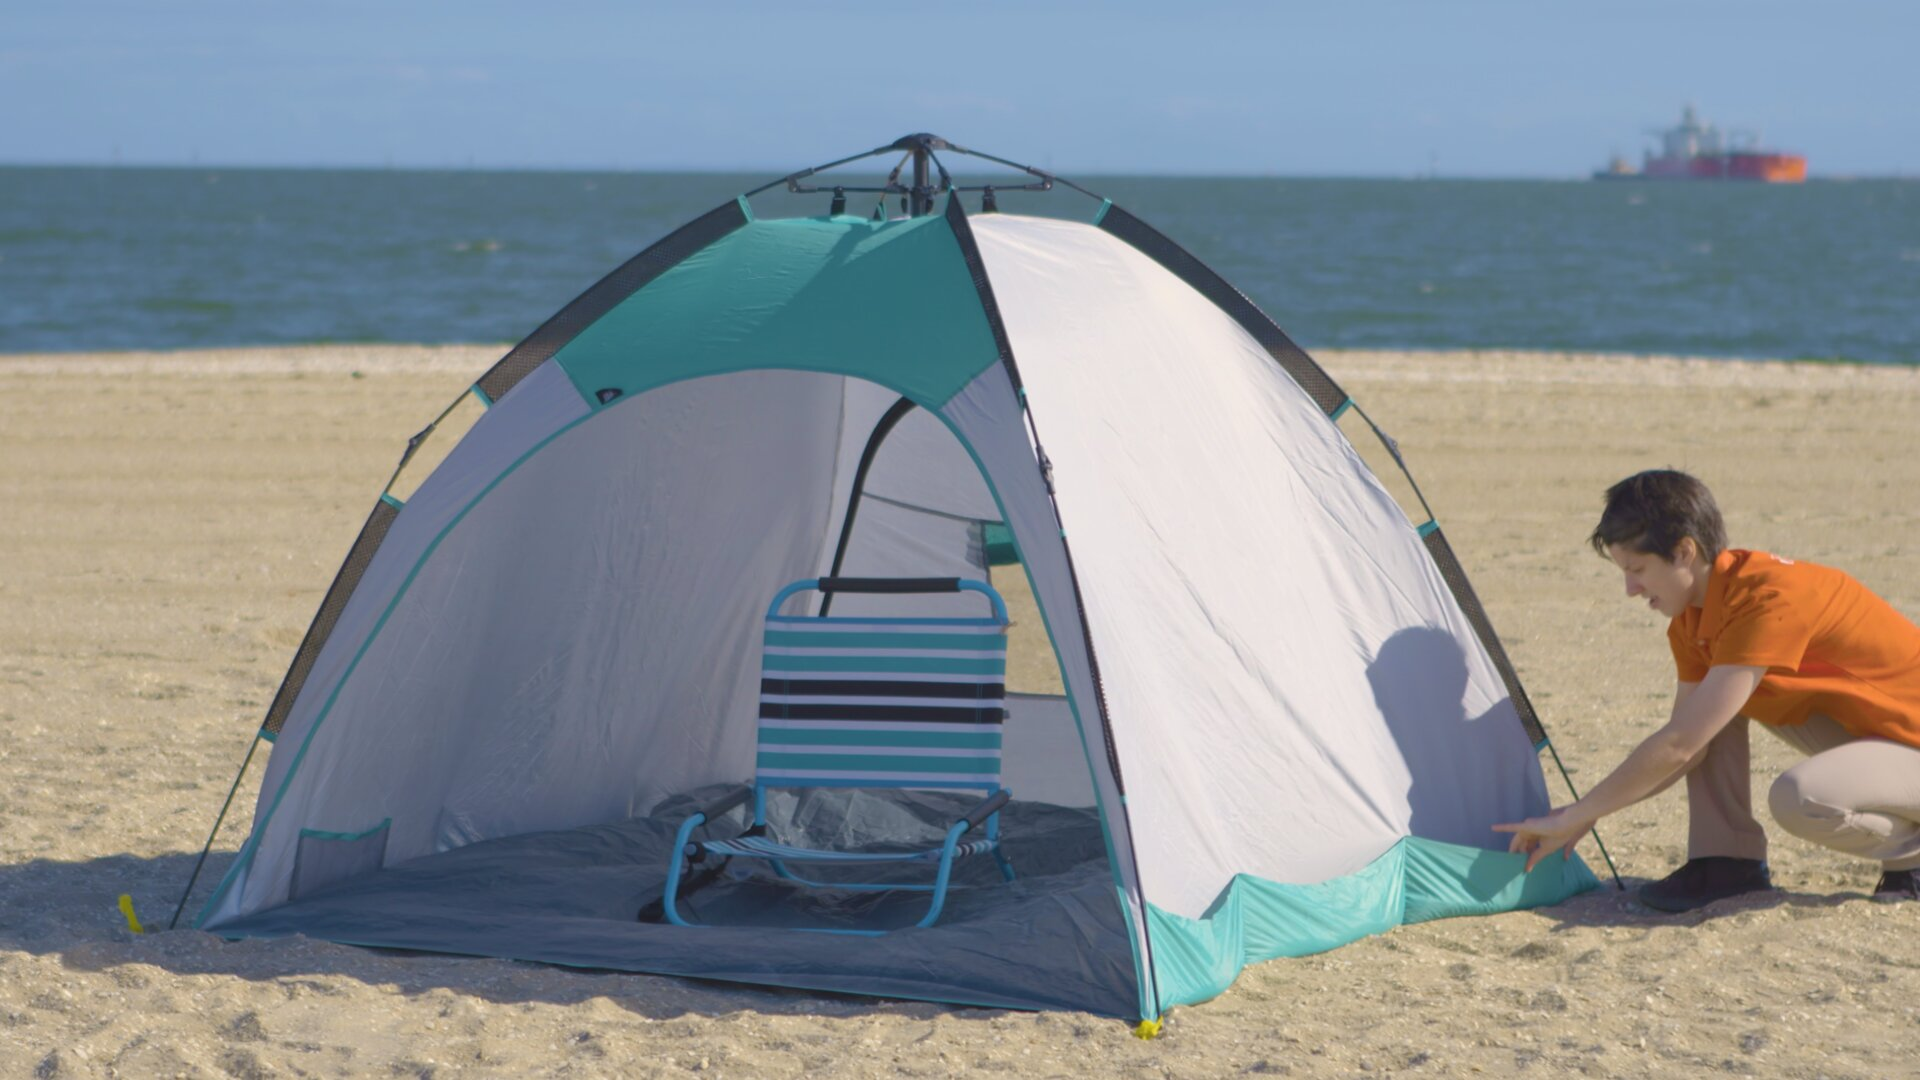 How To Choose A Beach Shelter & Storage - Beach Shelter